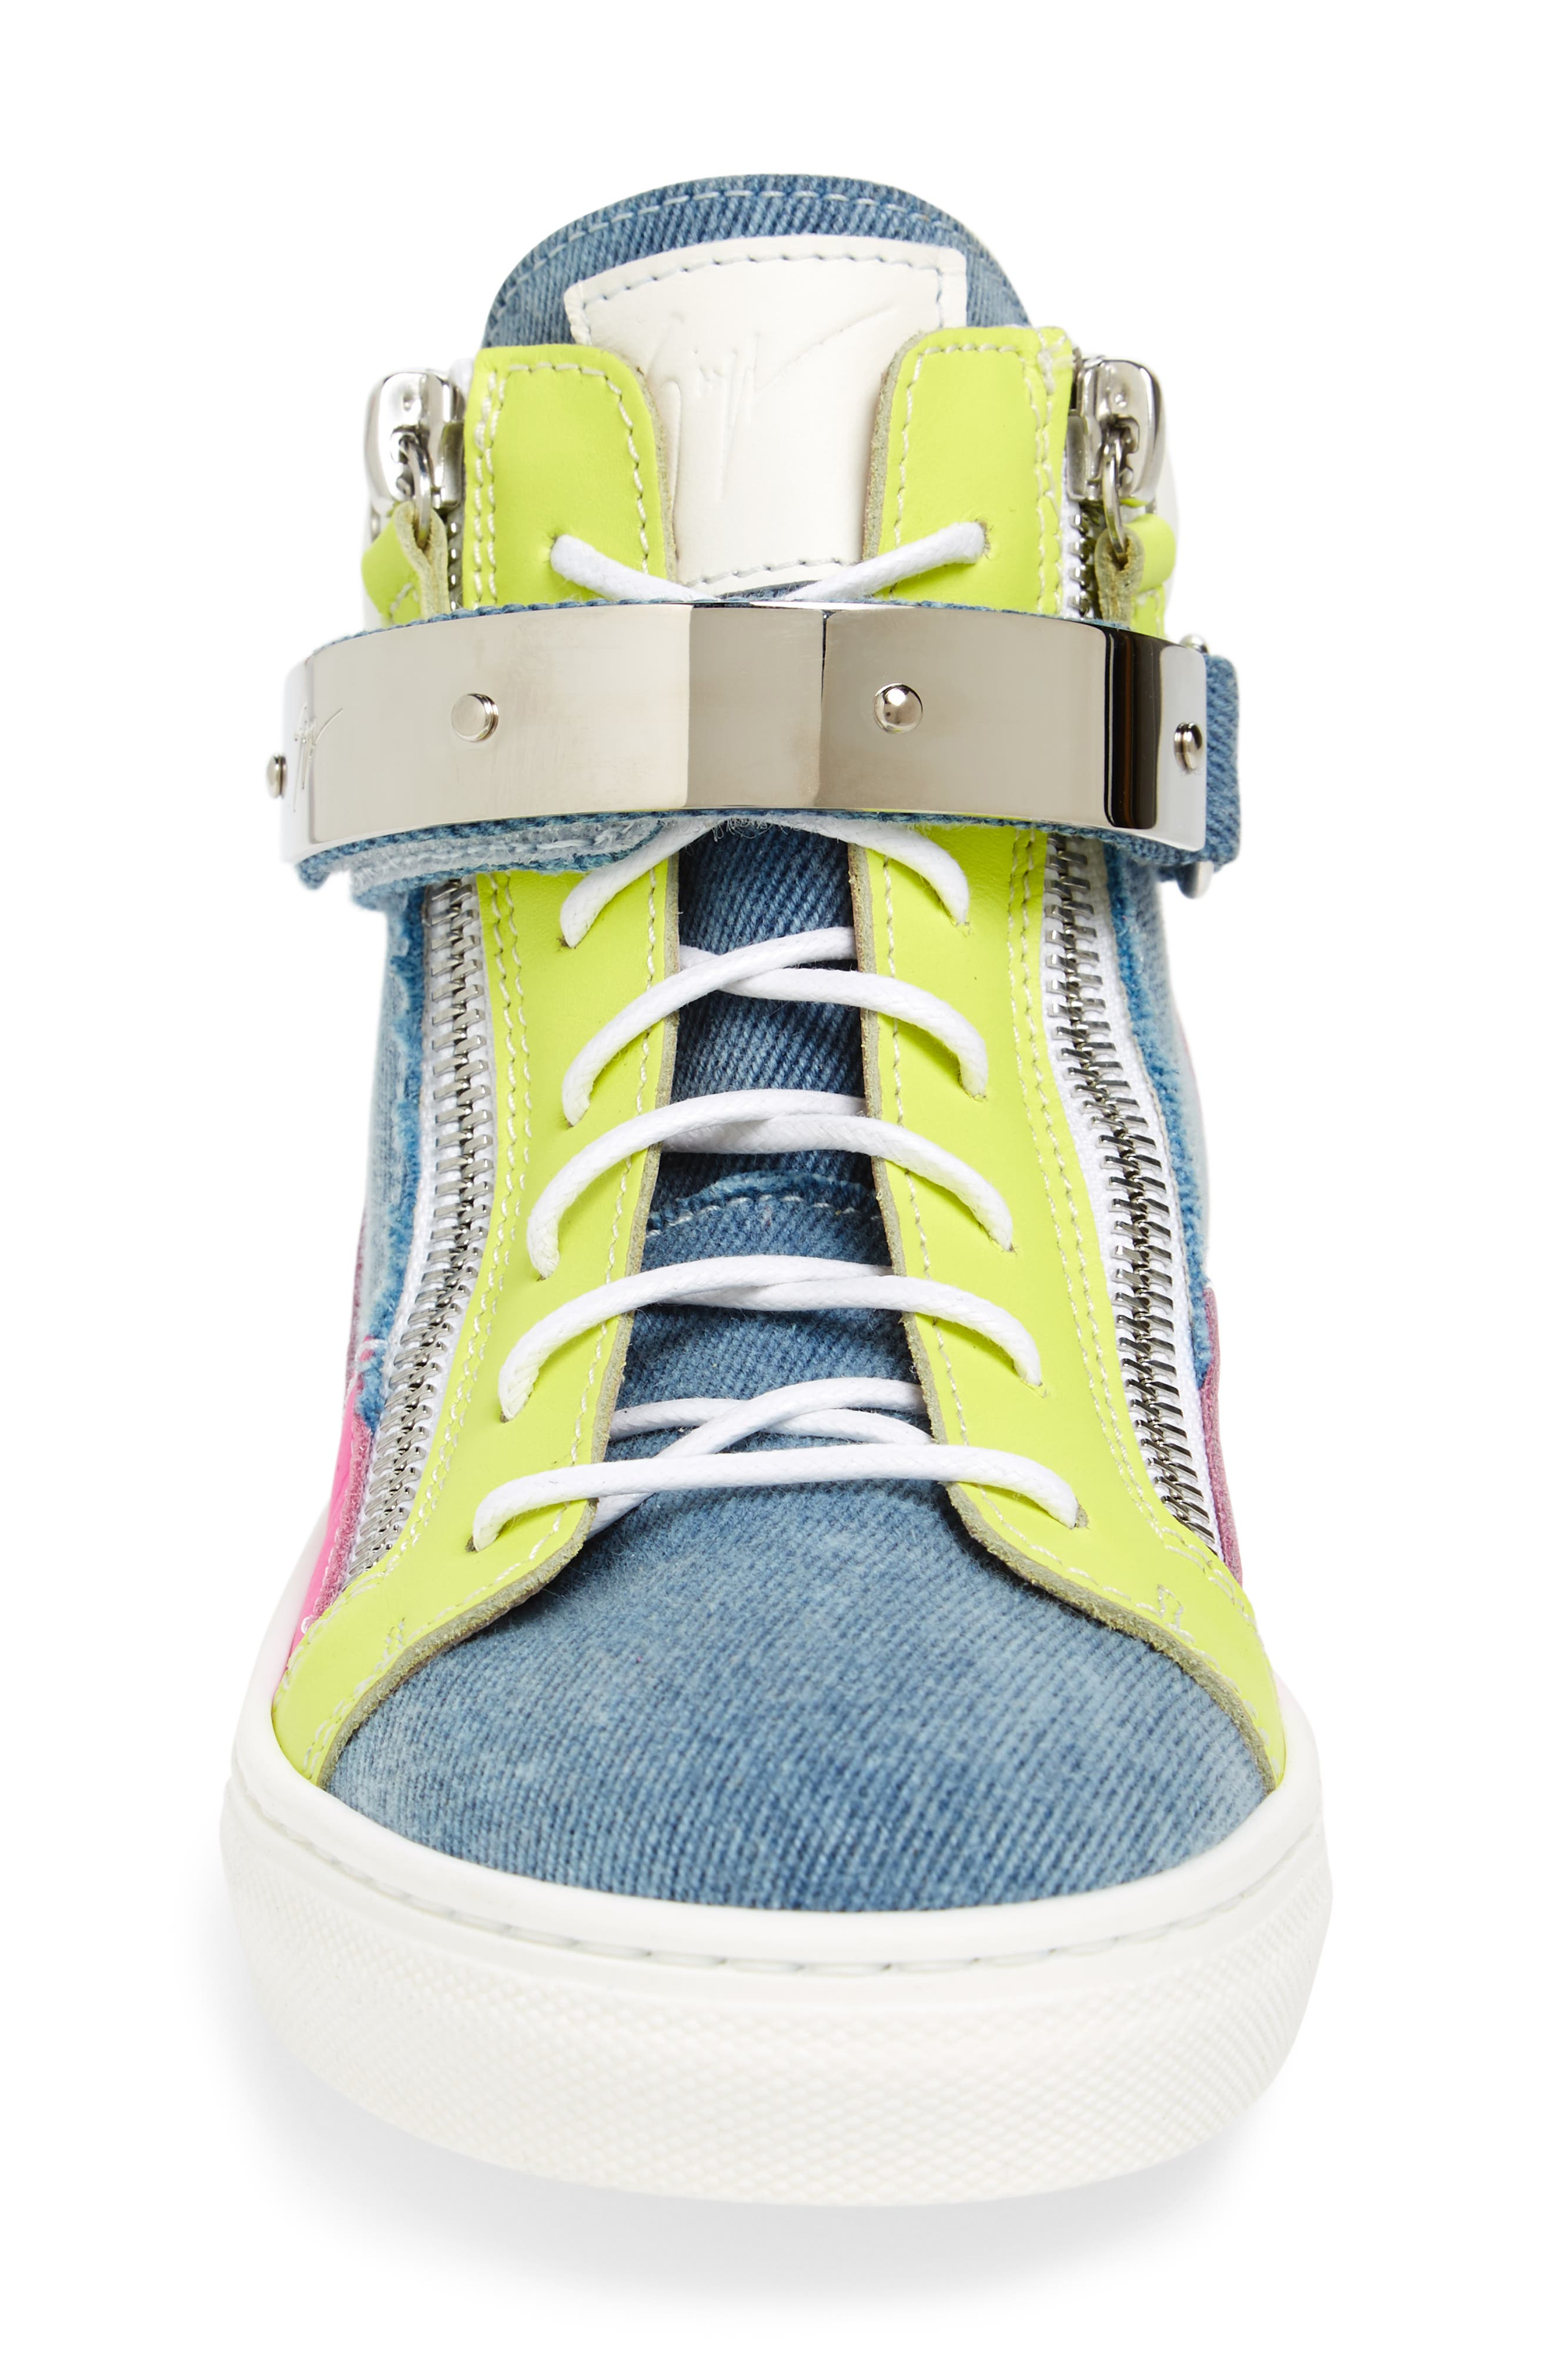 London High Top Sneaker,                             Alternate thumbnail 4, color,                             Multi